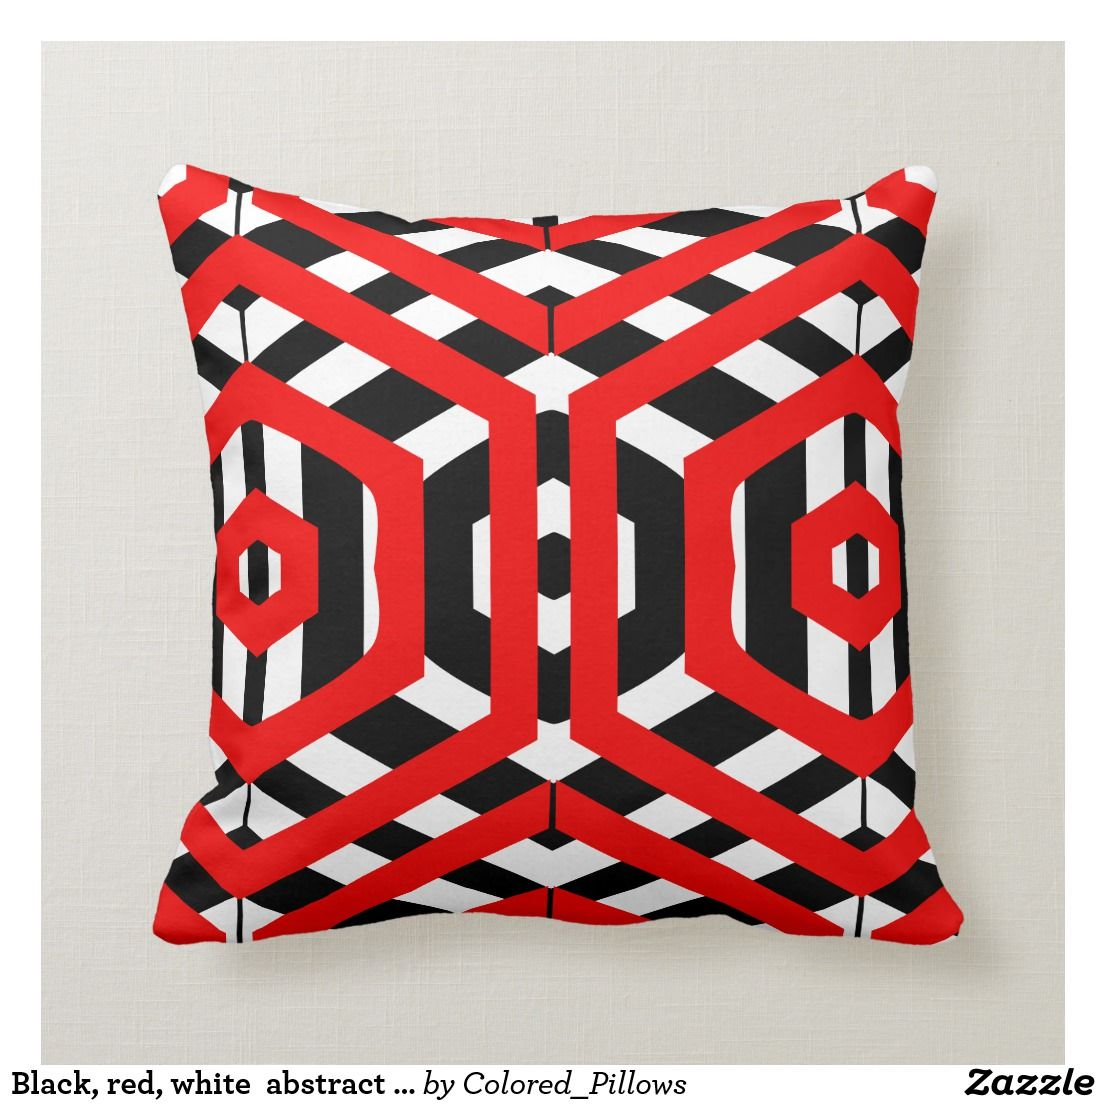 Black Red White Abstract Pattern Solid Back Throw Pillow Zazzle Com With Images Pillows Throw Pillows Black Decorative Pillows